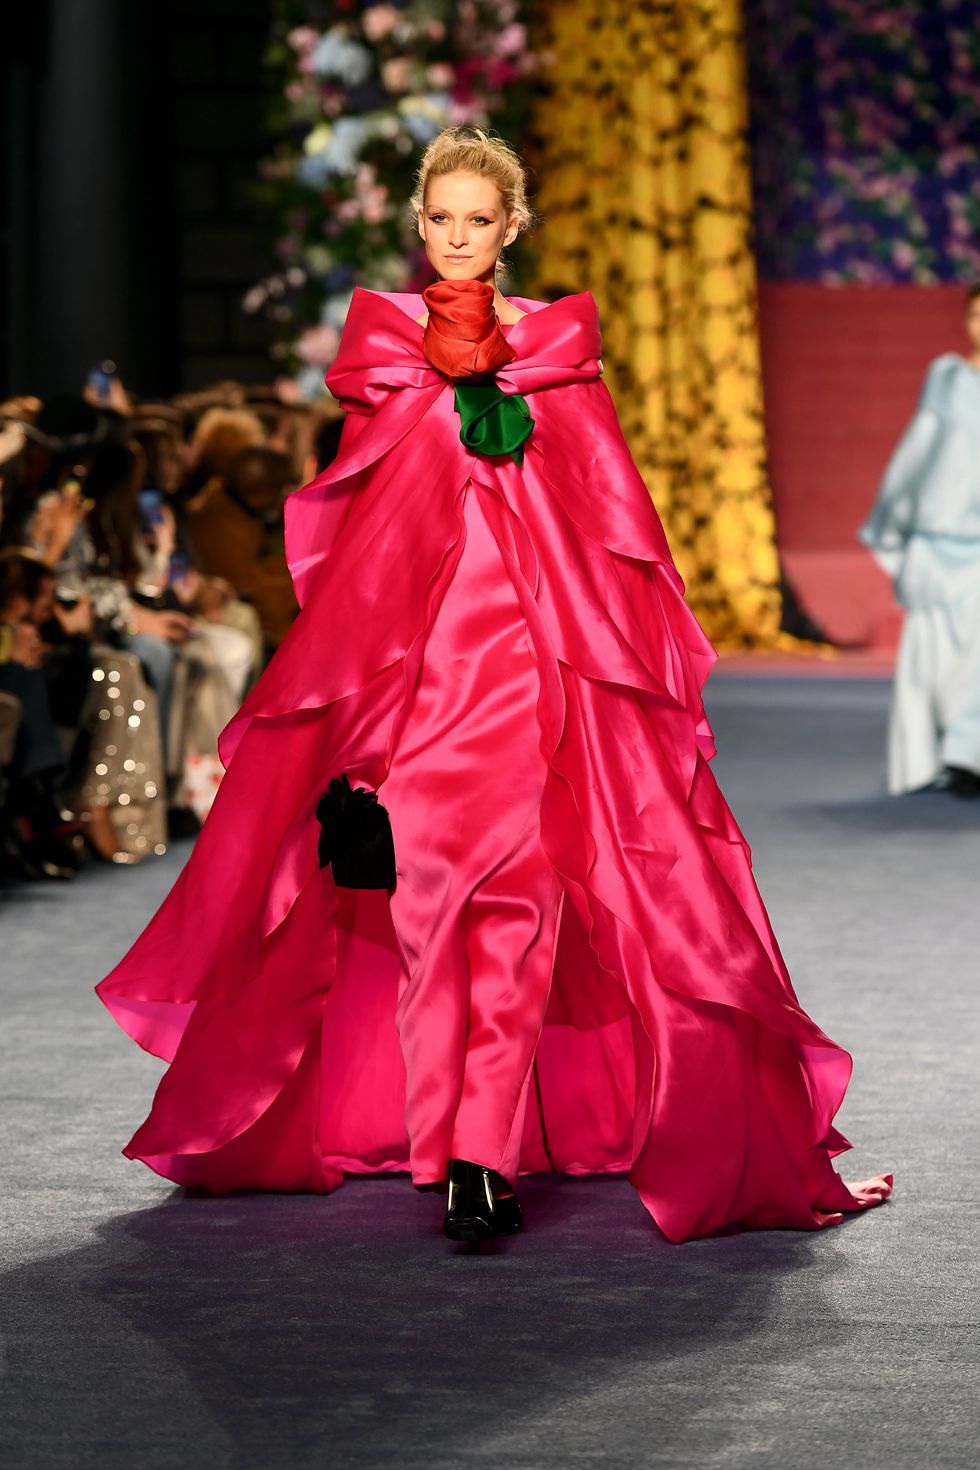 👗 London Fashion Week 2020: Runway Trends You Can Bring To Your Home Décor!